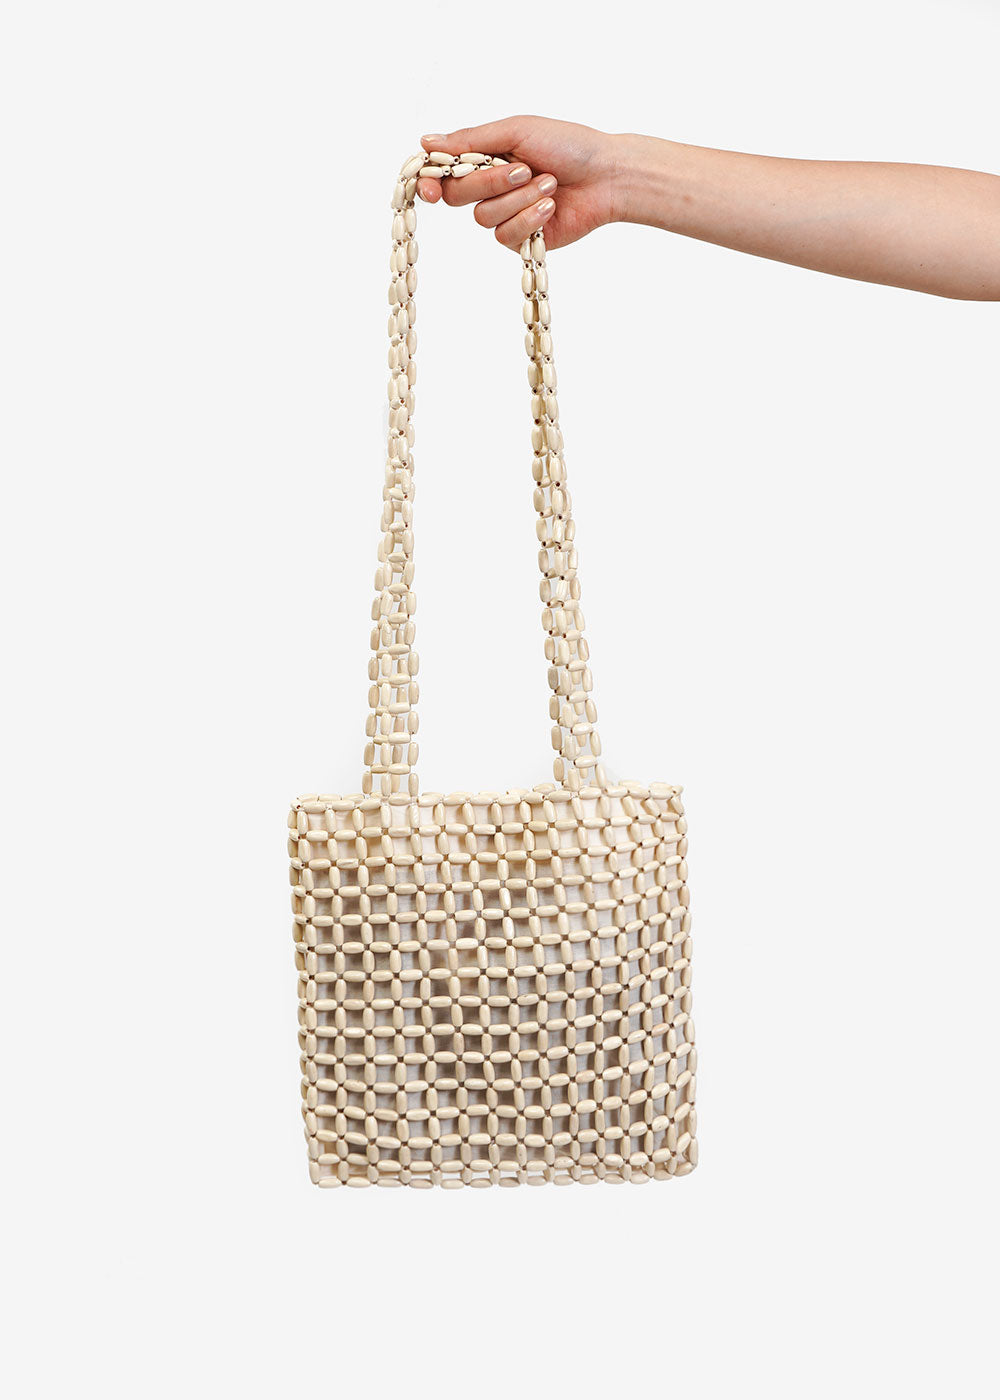 Paloma Wool Natalia Bag — Shop sustainable fashion and slow fashion at New Classics Studios